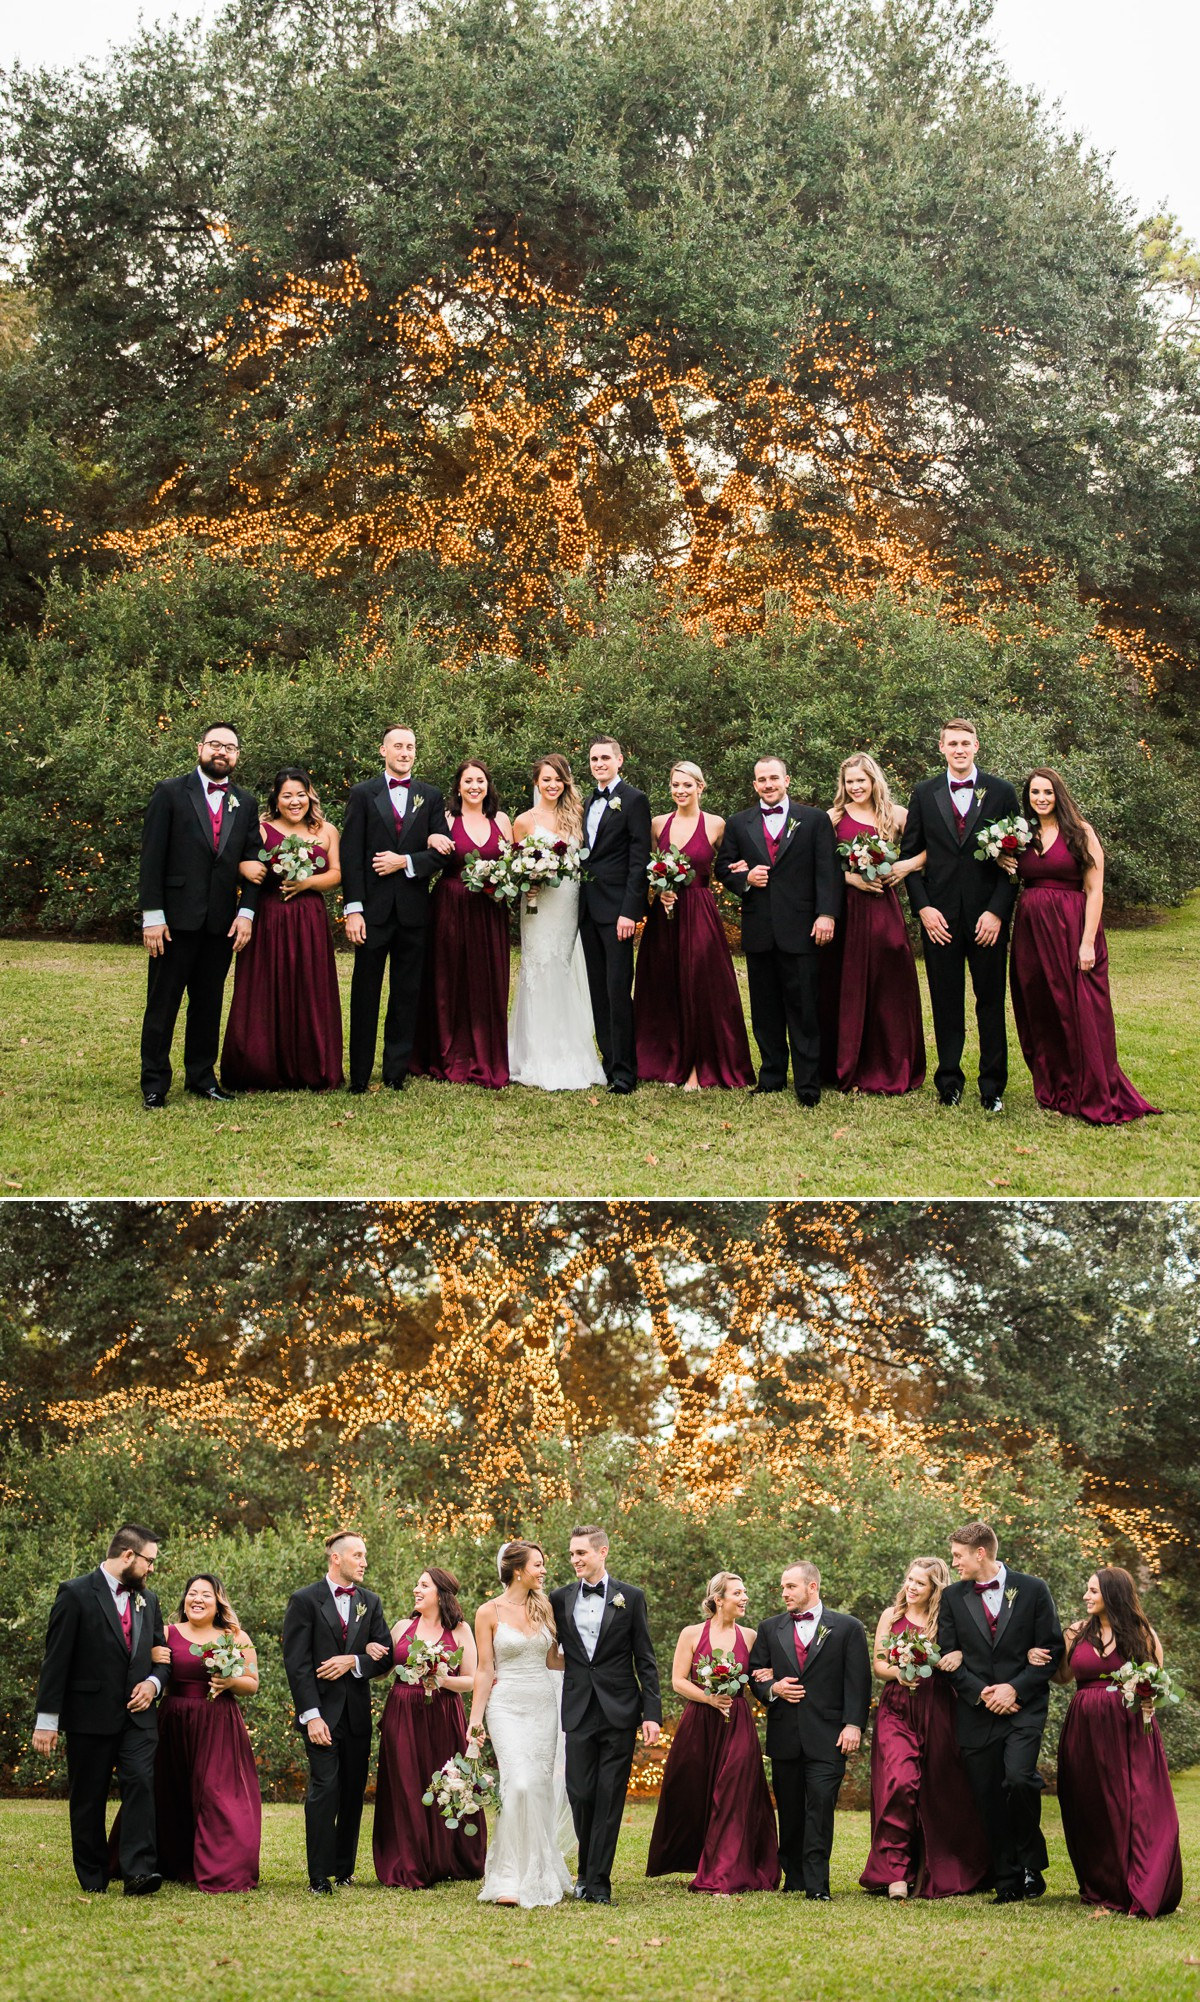 Manor House Wedding at The Houstonian Hotel Outdoors Bridal Party